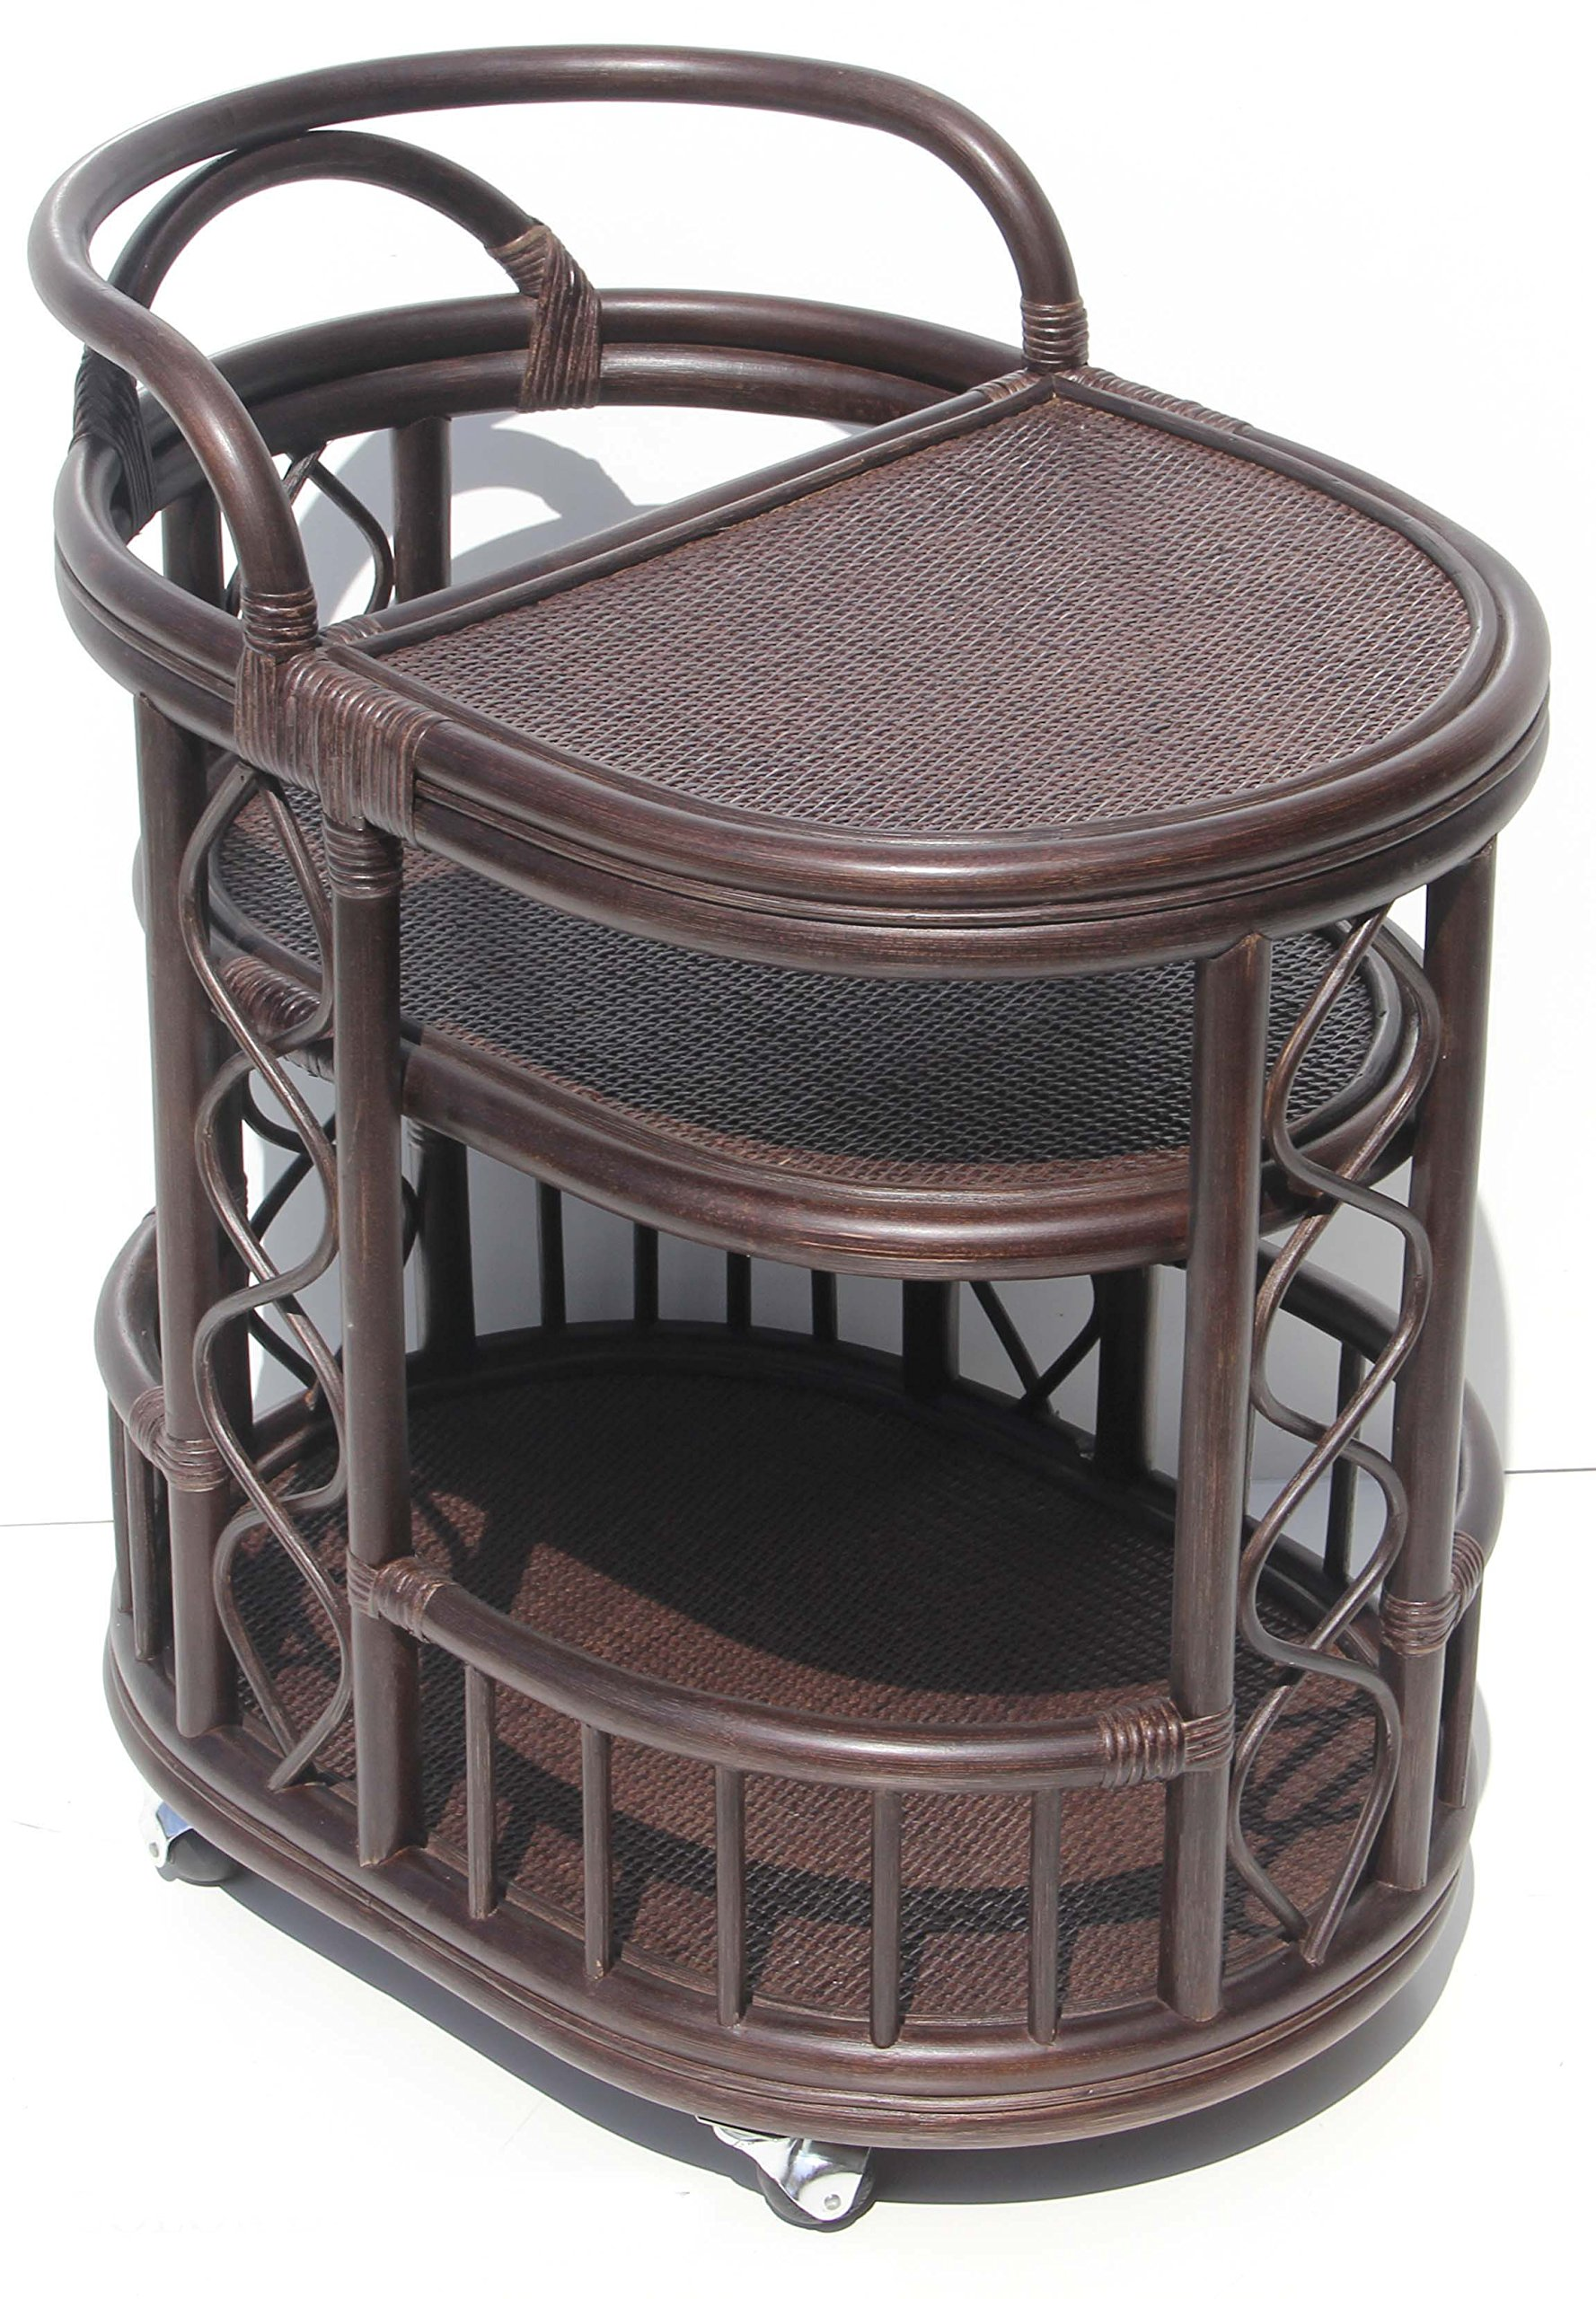 Moving Serving Cart Bar Table Natural Rattan Wicker Exclusive Handmade ECO, Dark Brown